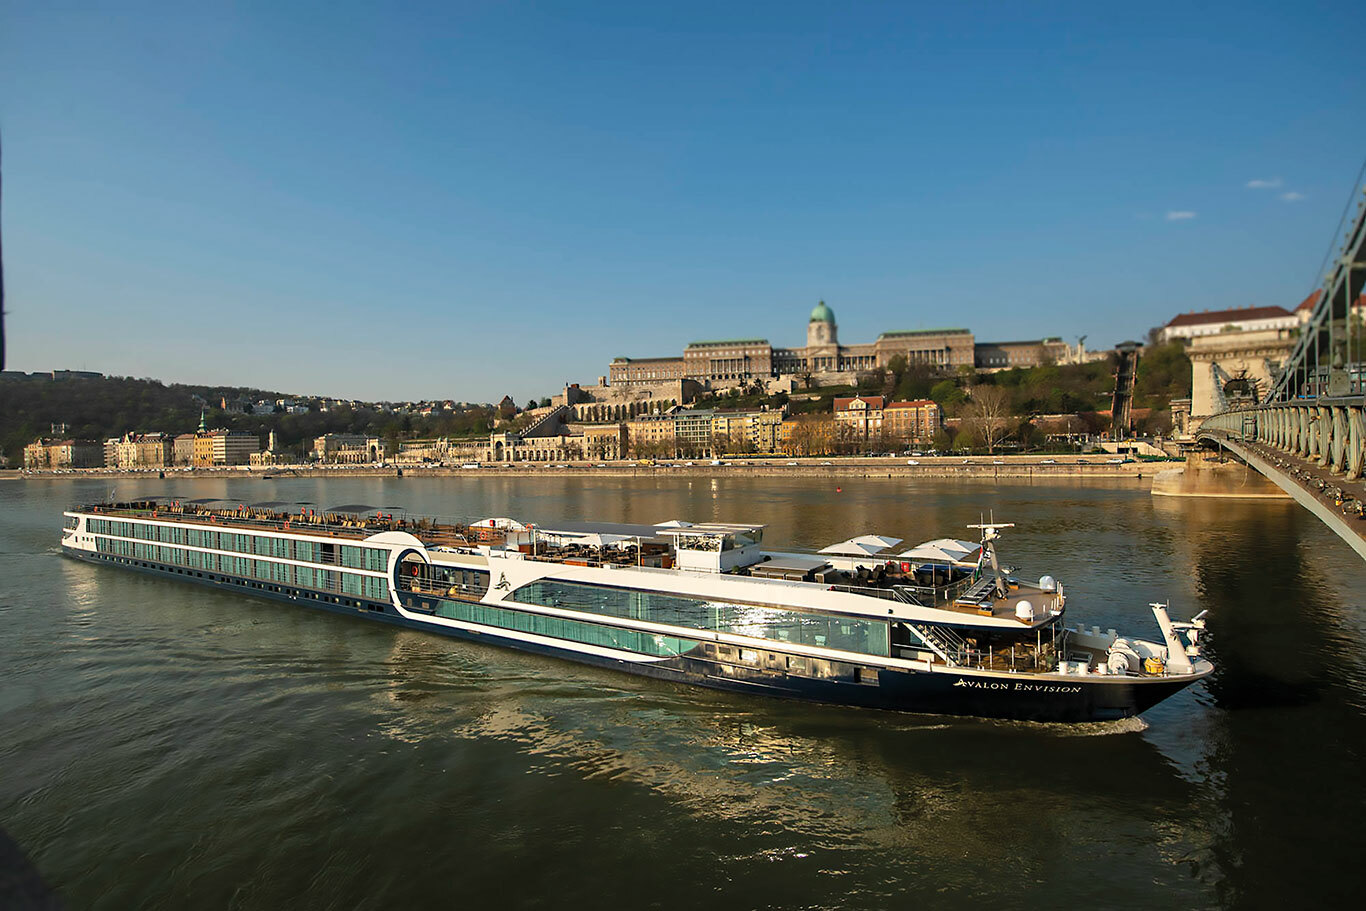 Avalon Envision on the Danube